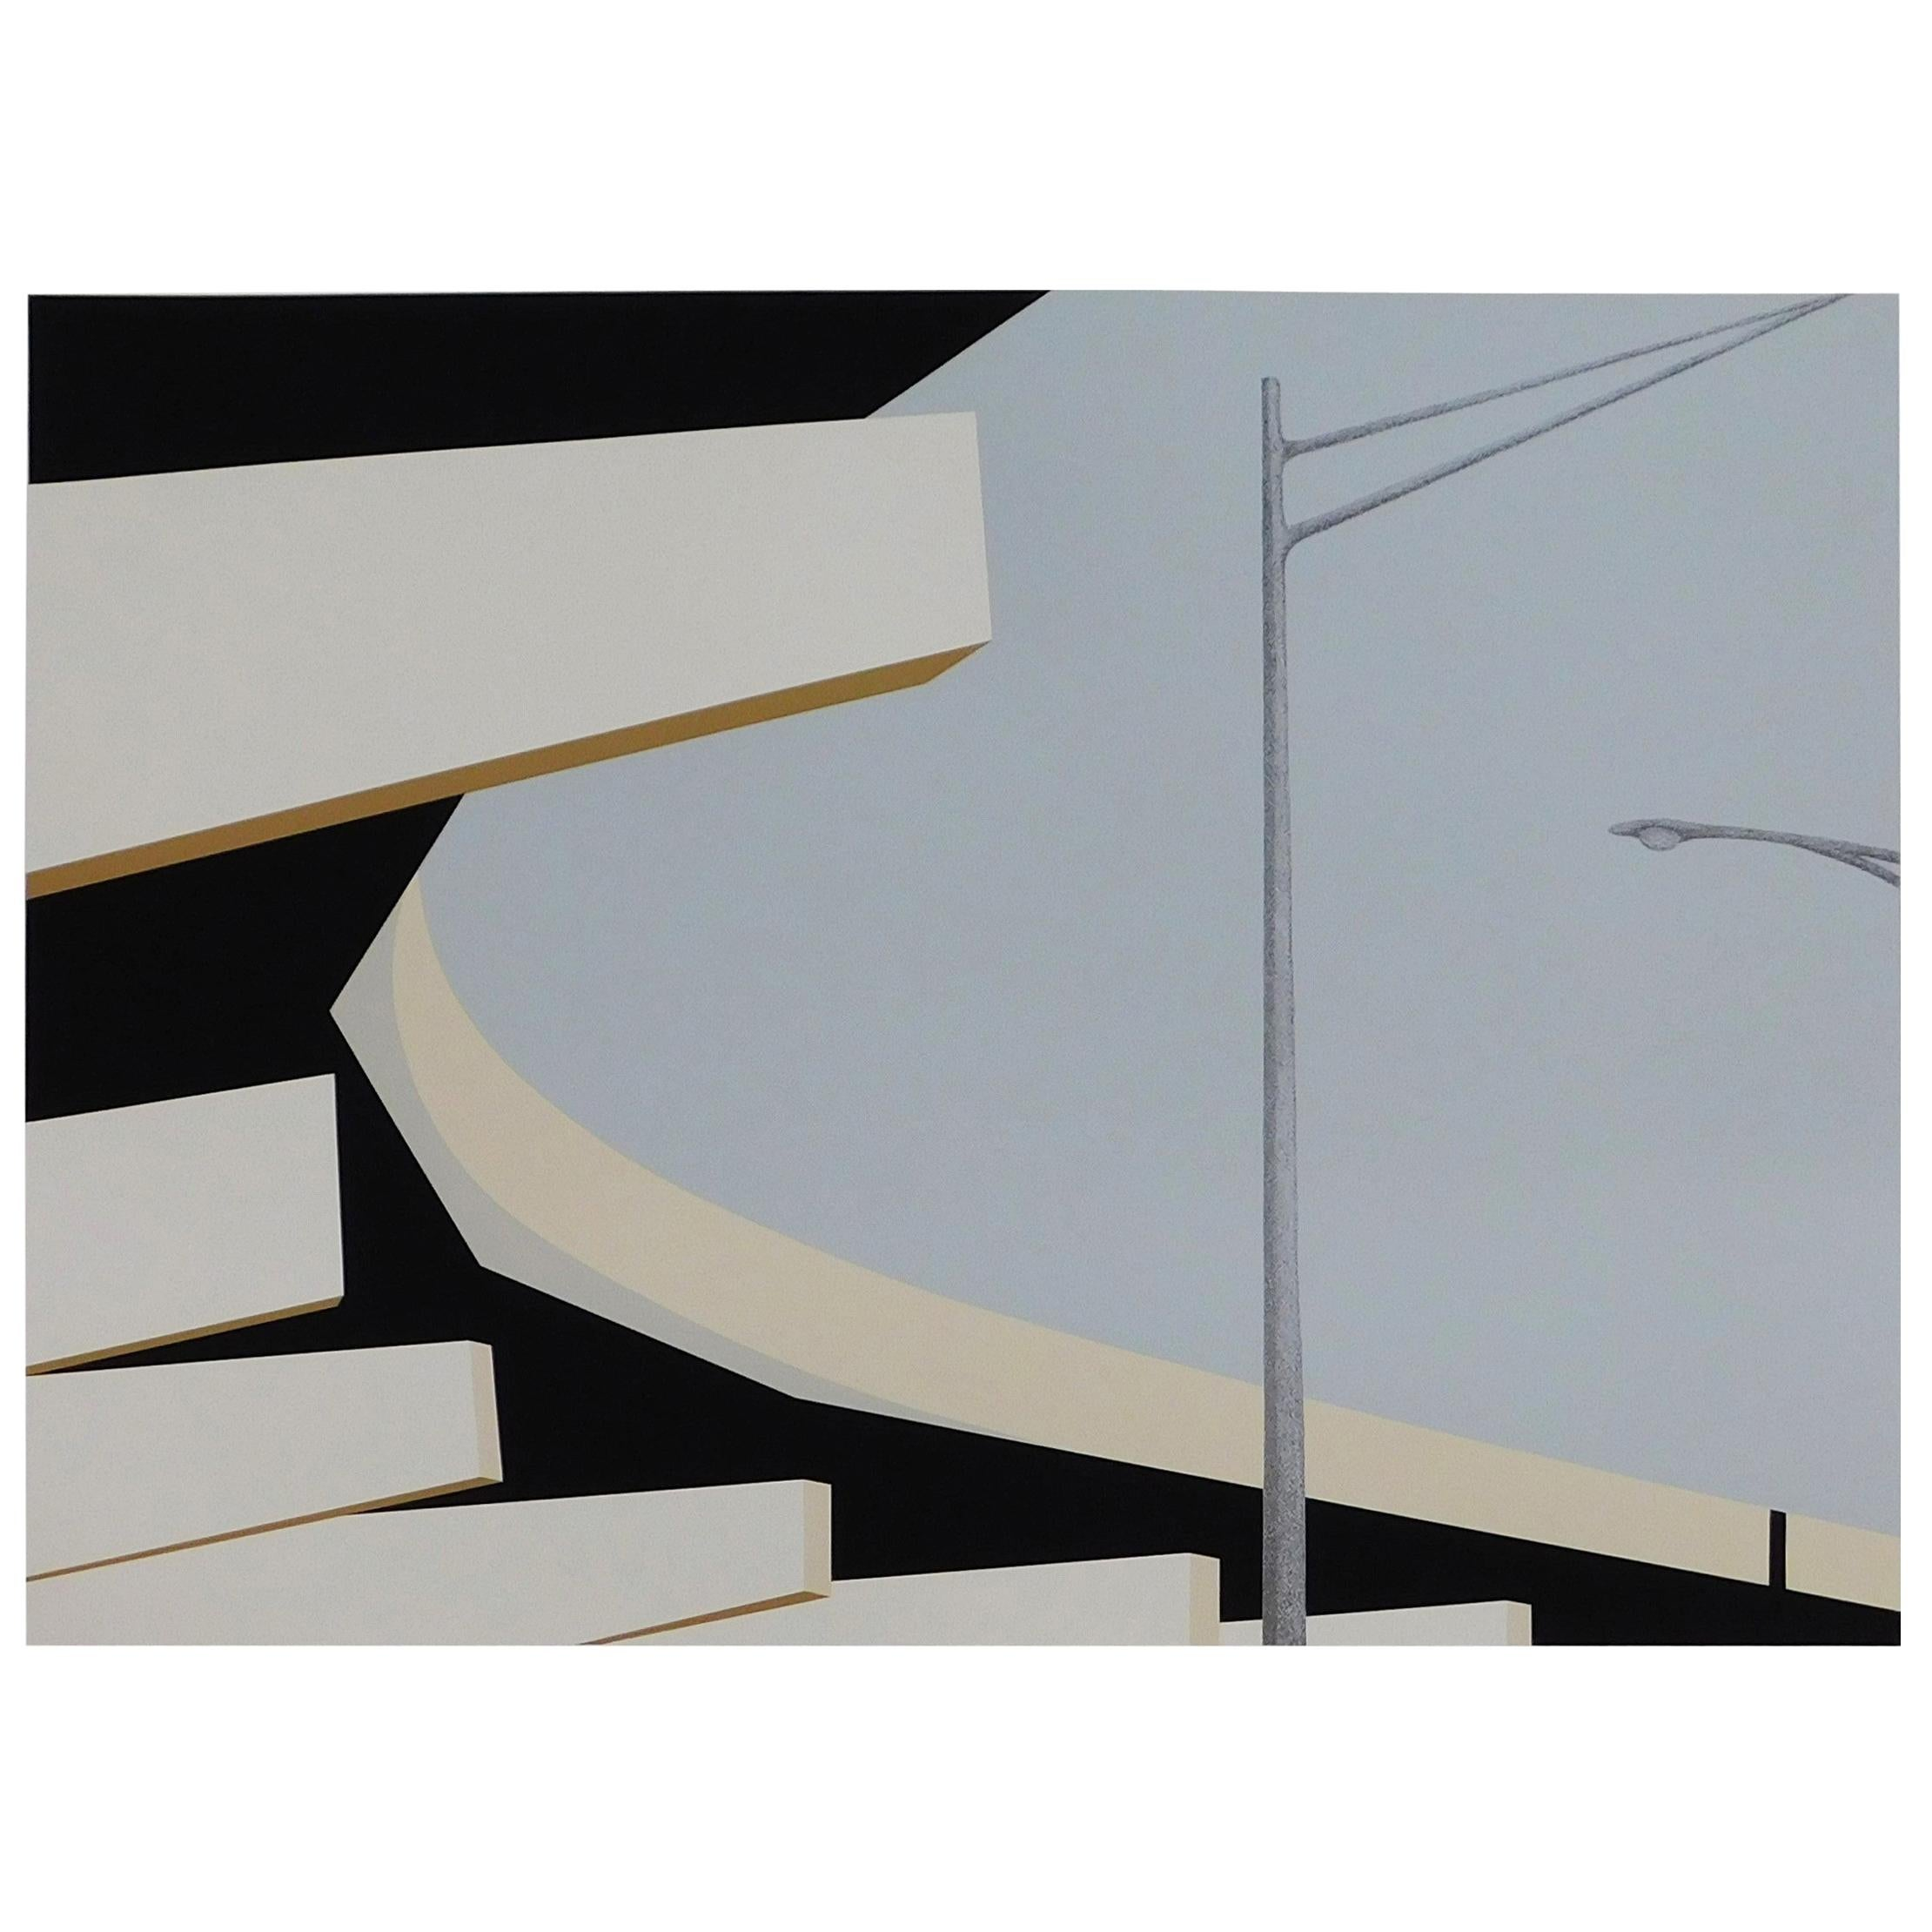 Allan D'Arcangelo '1930-1998' 1979 Signed and Numbered Serigraph Print